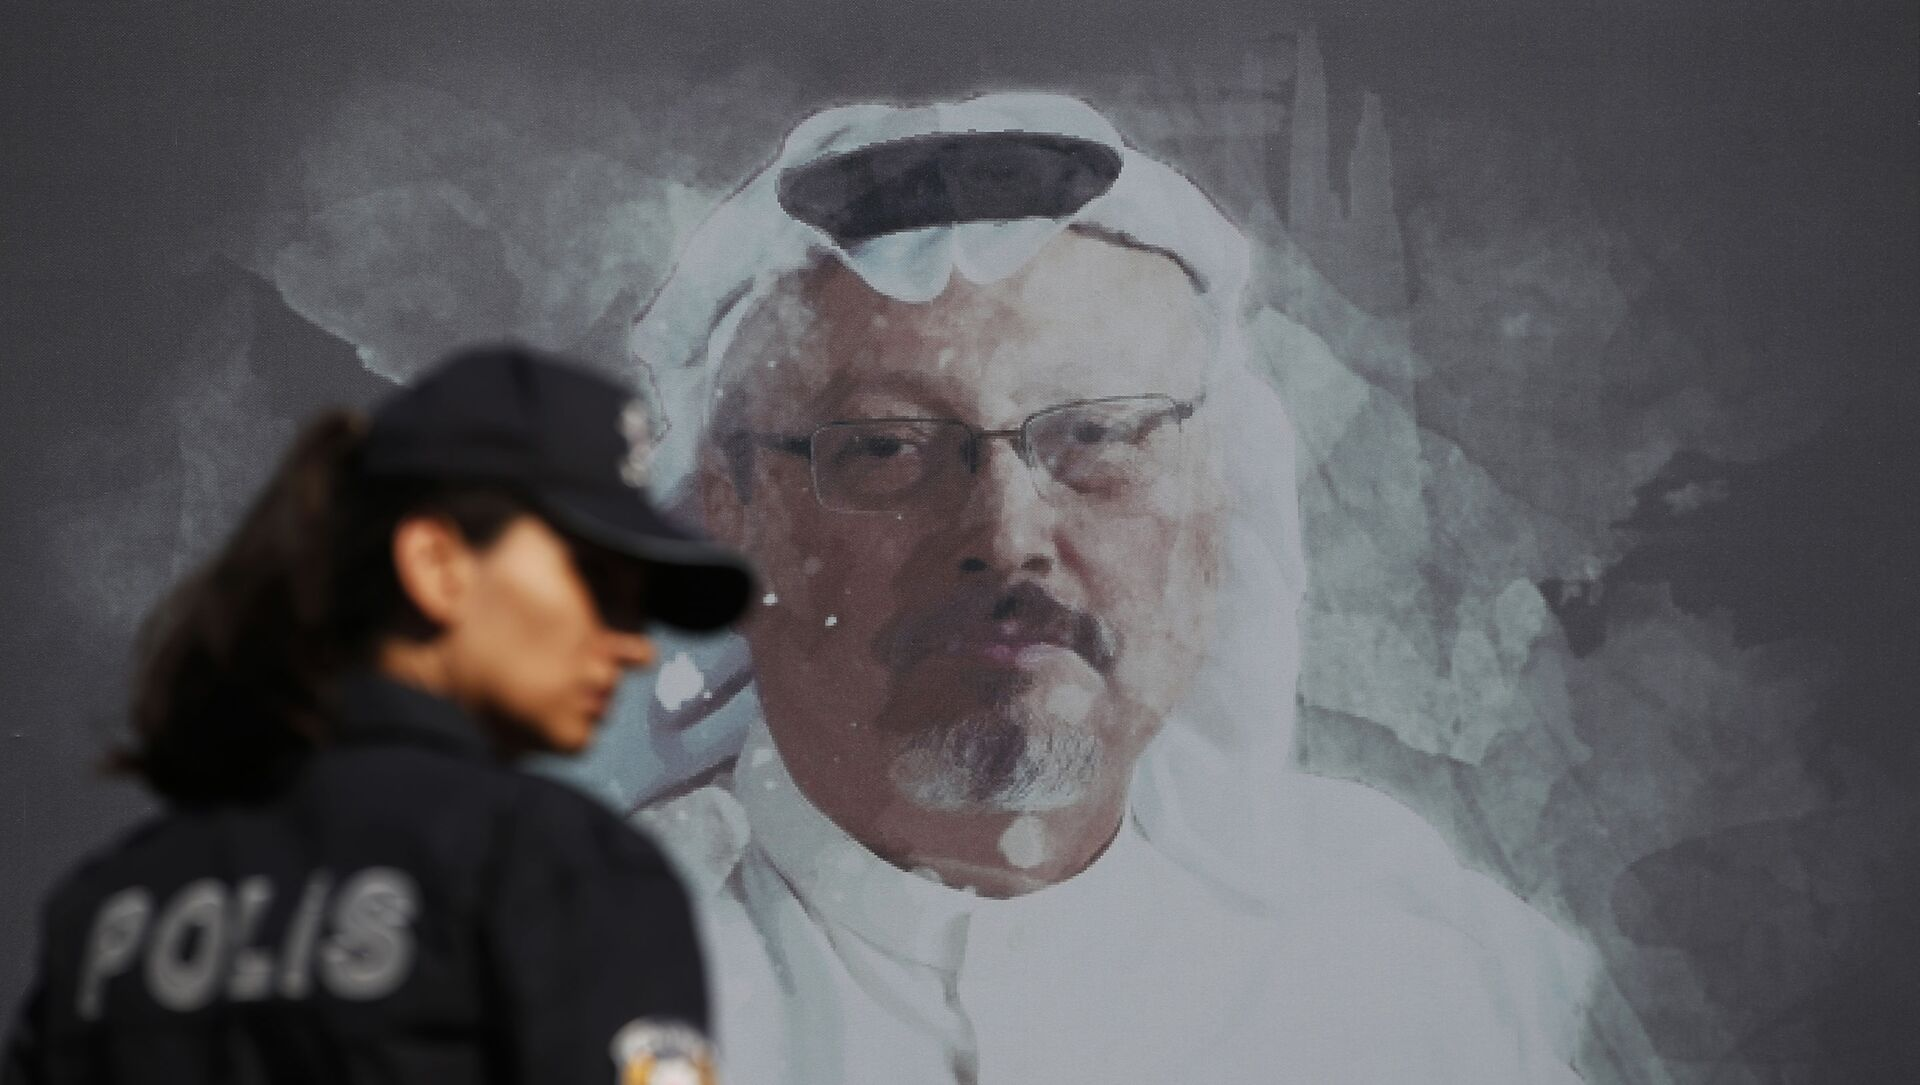 In this Wednesday, Oct. 2, 2019 file photo, a Turkish police officer walks past a picture of slain Saudi journalist Jamal Khashoggi prior to a ceremony, near the Saudi Arabia consulate in Istanbul, marking the one-year anniversary of his death. - Sputnik International, 1920, 03.08.2021